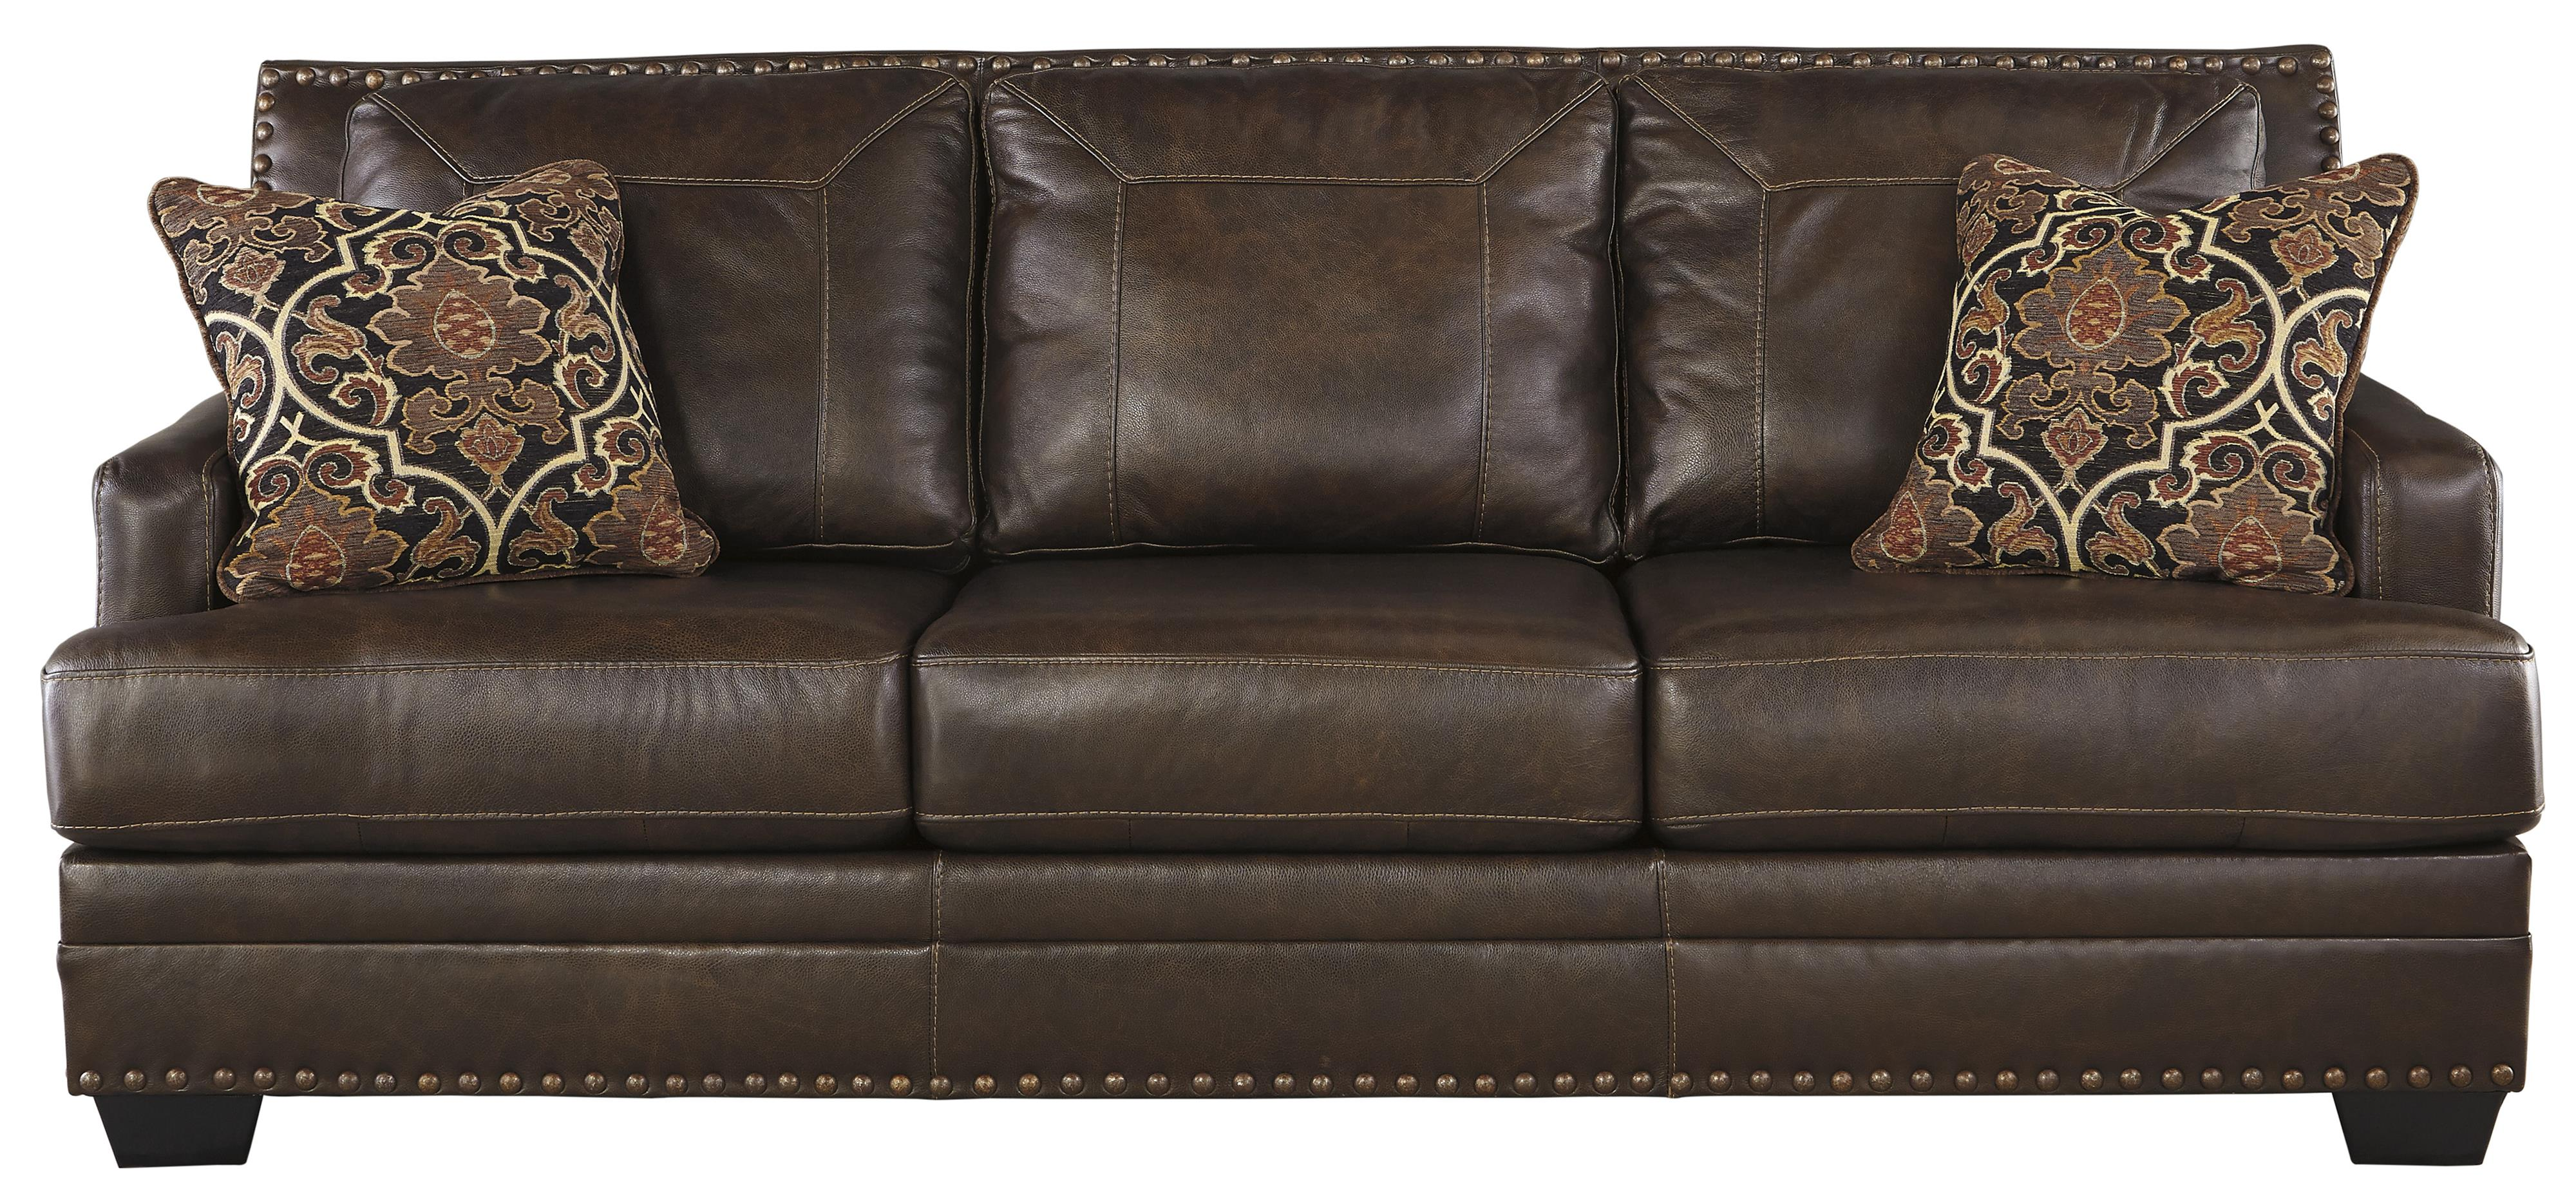 Leather Match Sofa with Coil Seat Cushions by Signature Design by